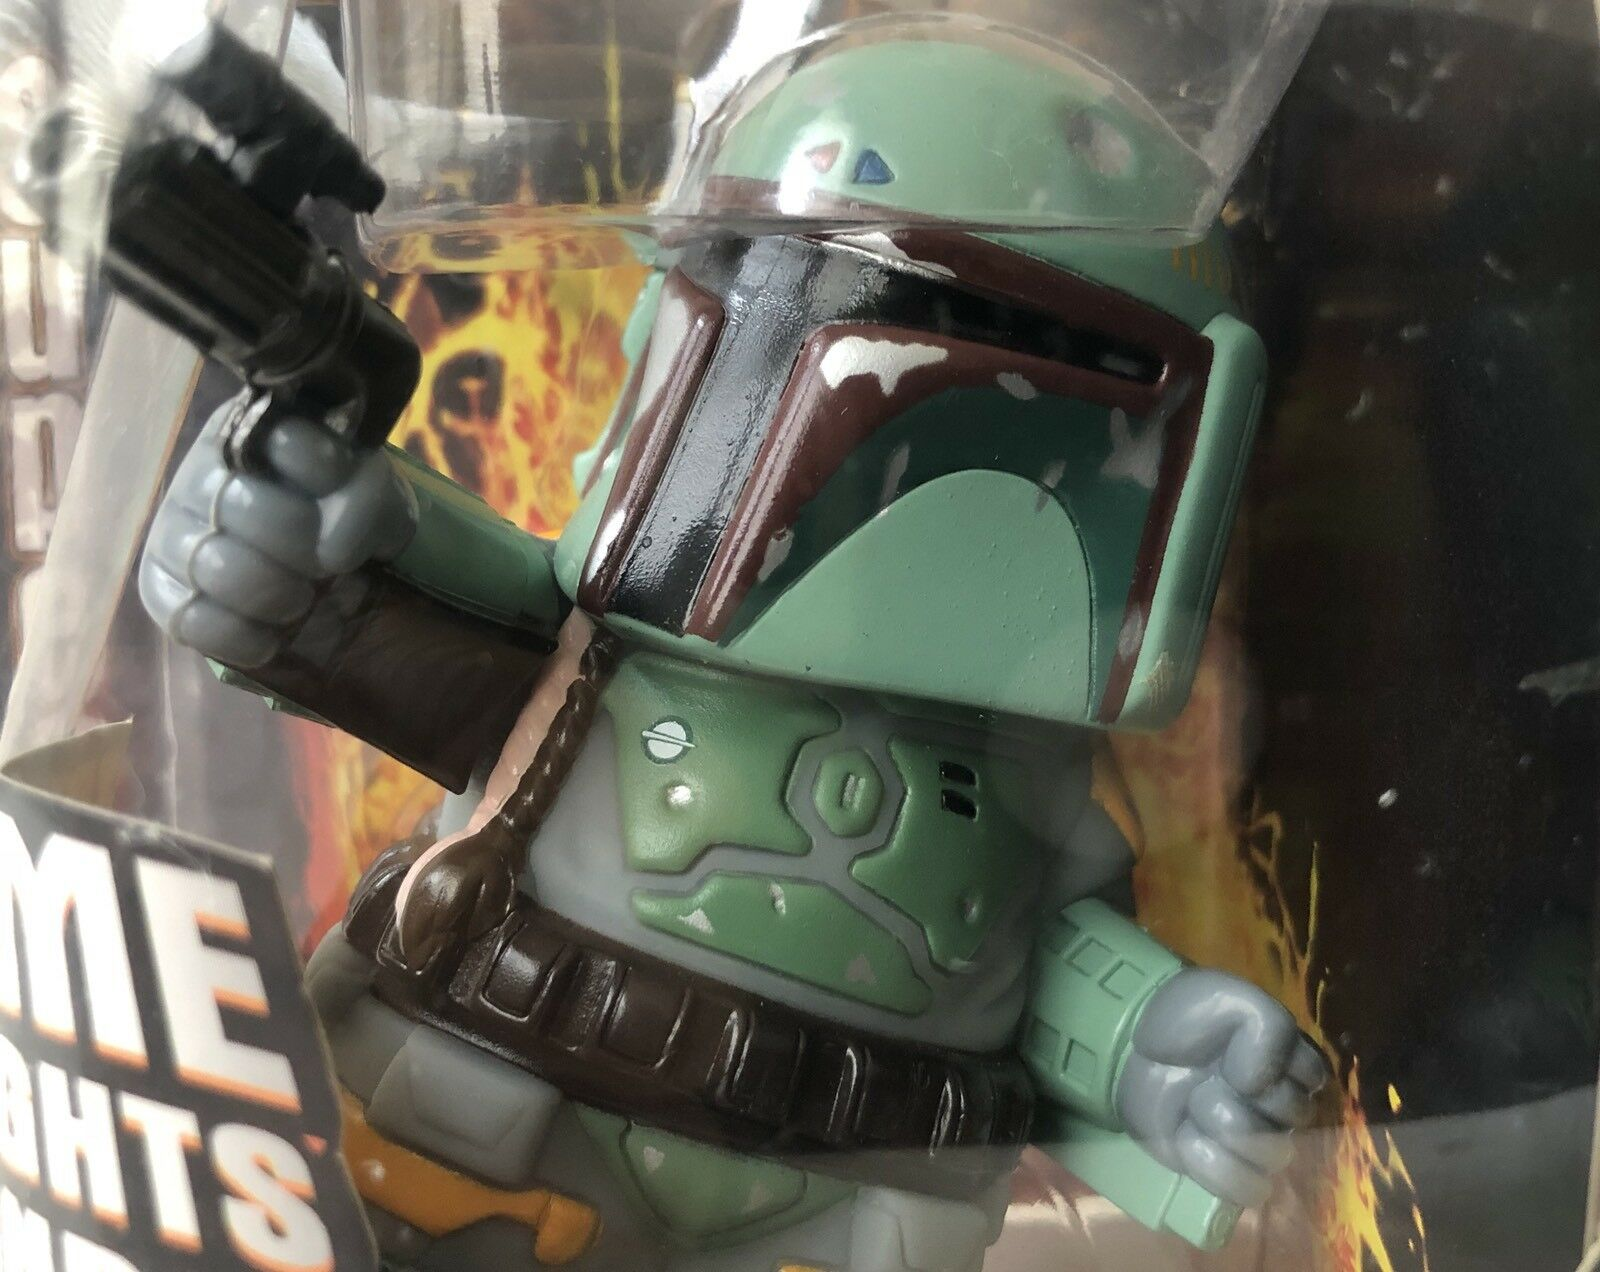 Star Wars Wars Wars Super D Boba Fett Lights & Sounds 2005 New 49f8a3